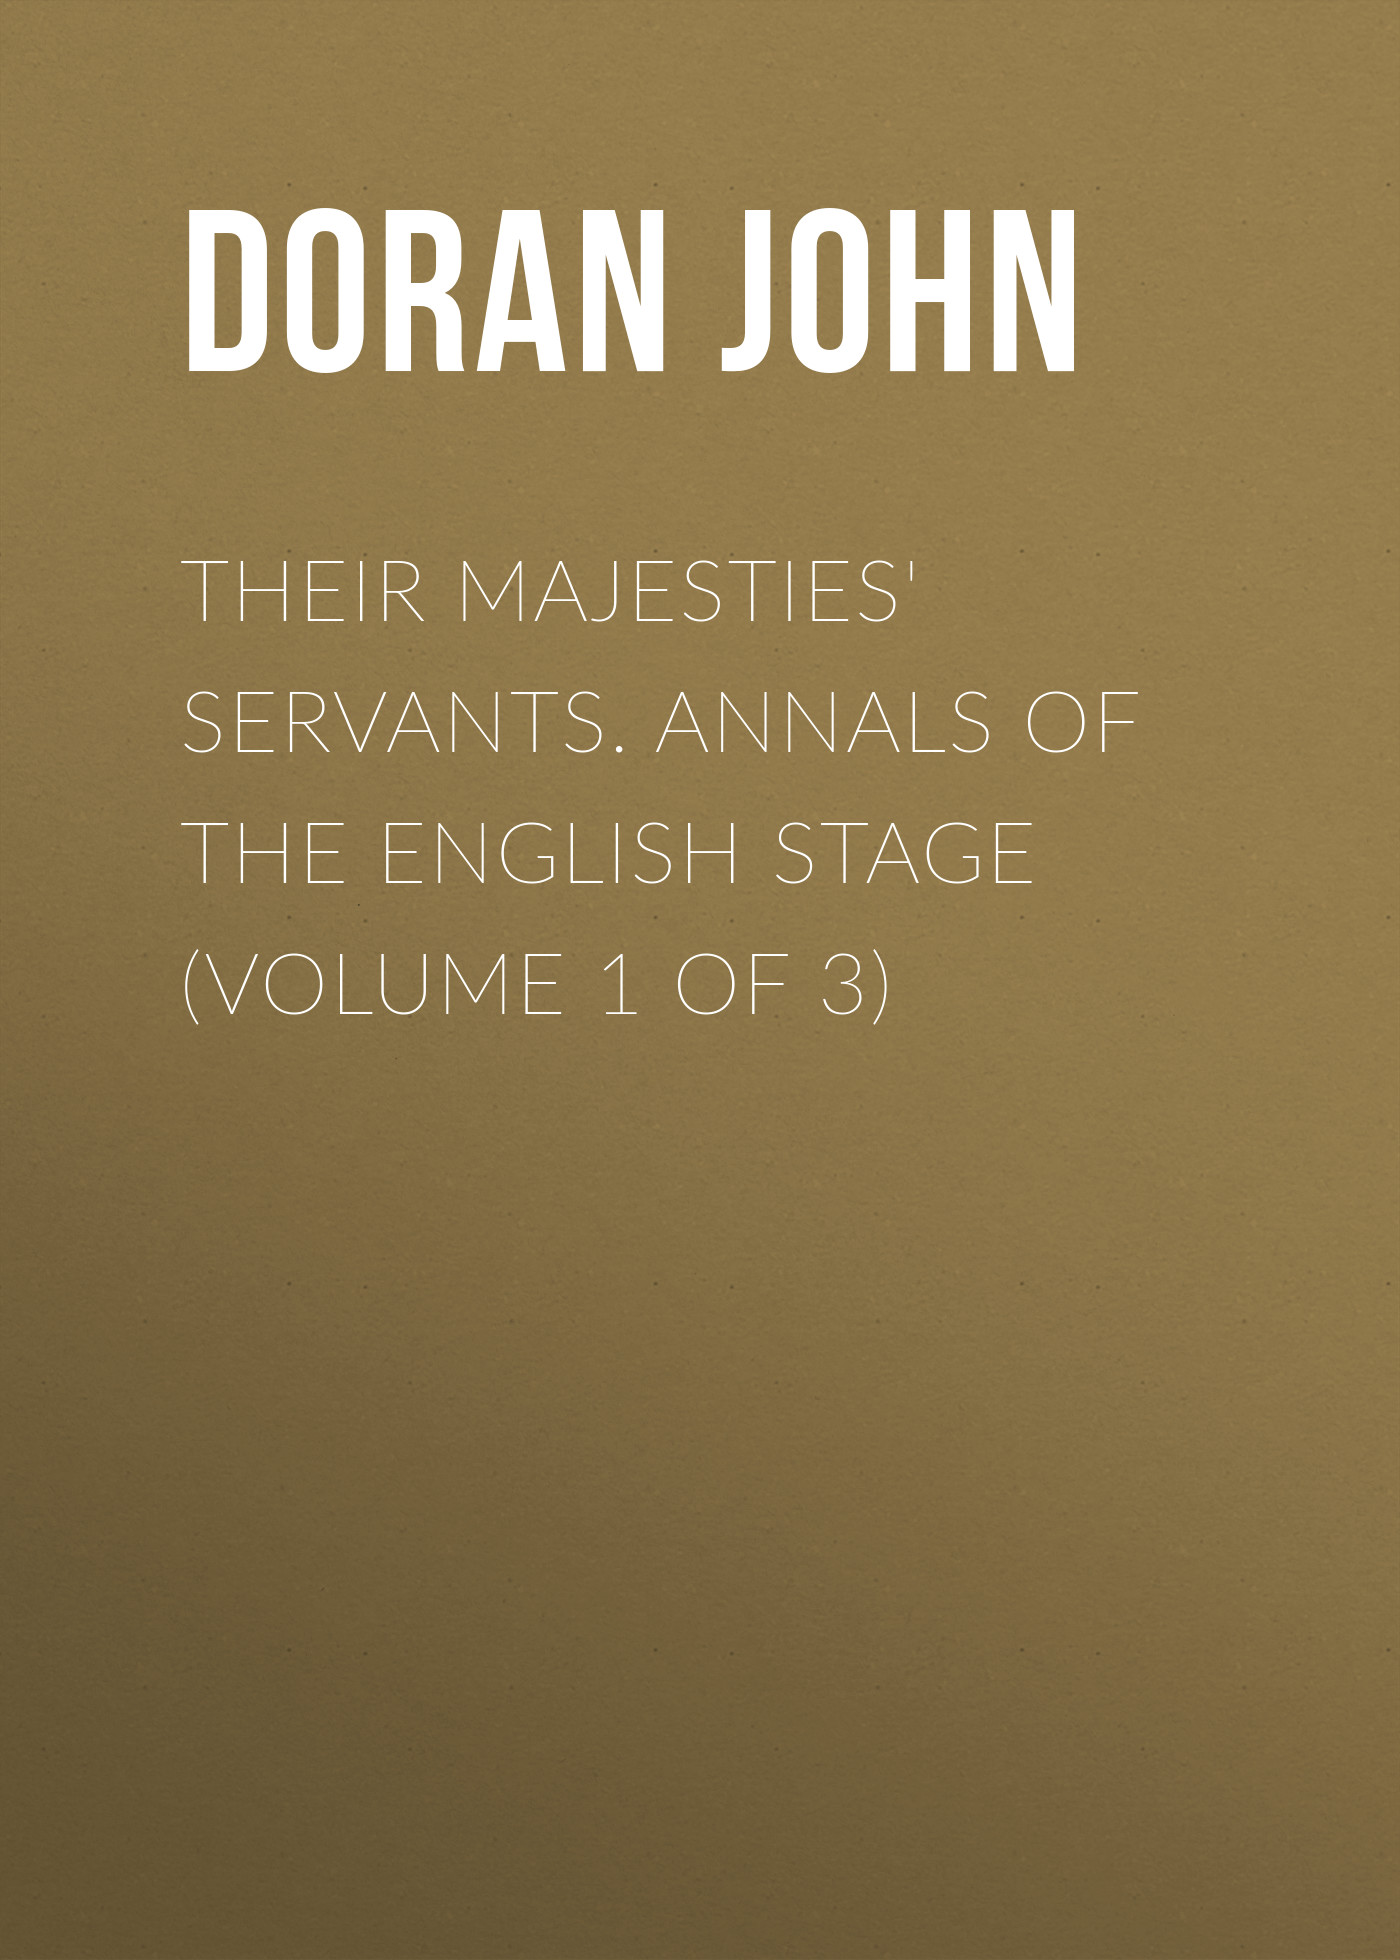 Doran John Their Majesties' Servants. Annals of the English Stage (Volume 1 of 3) doran john their majesties servants annals of the english stage volume 2 of 3